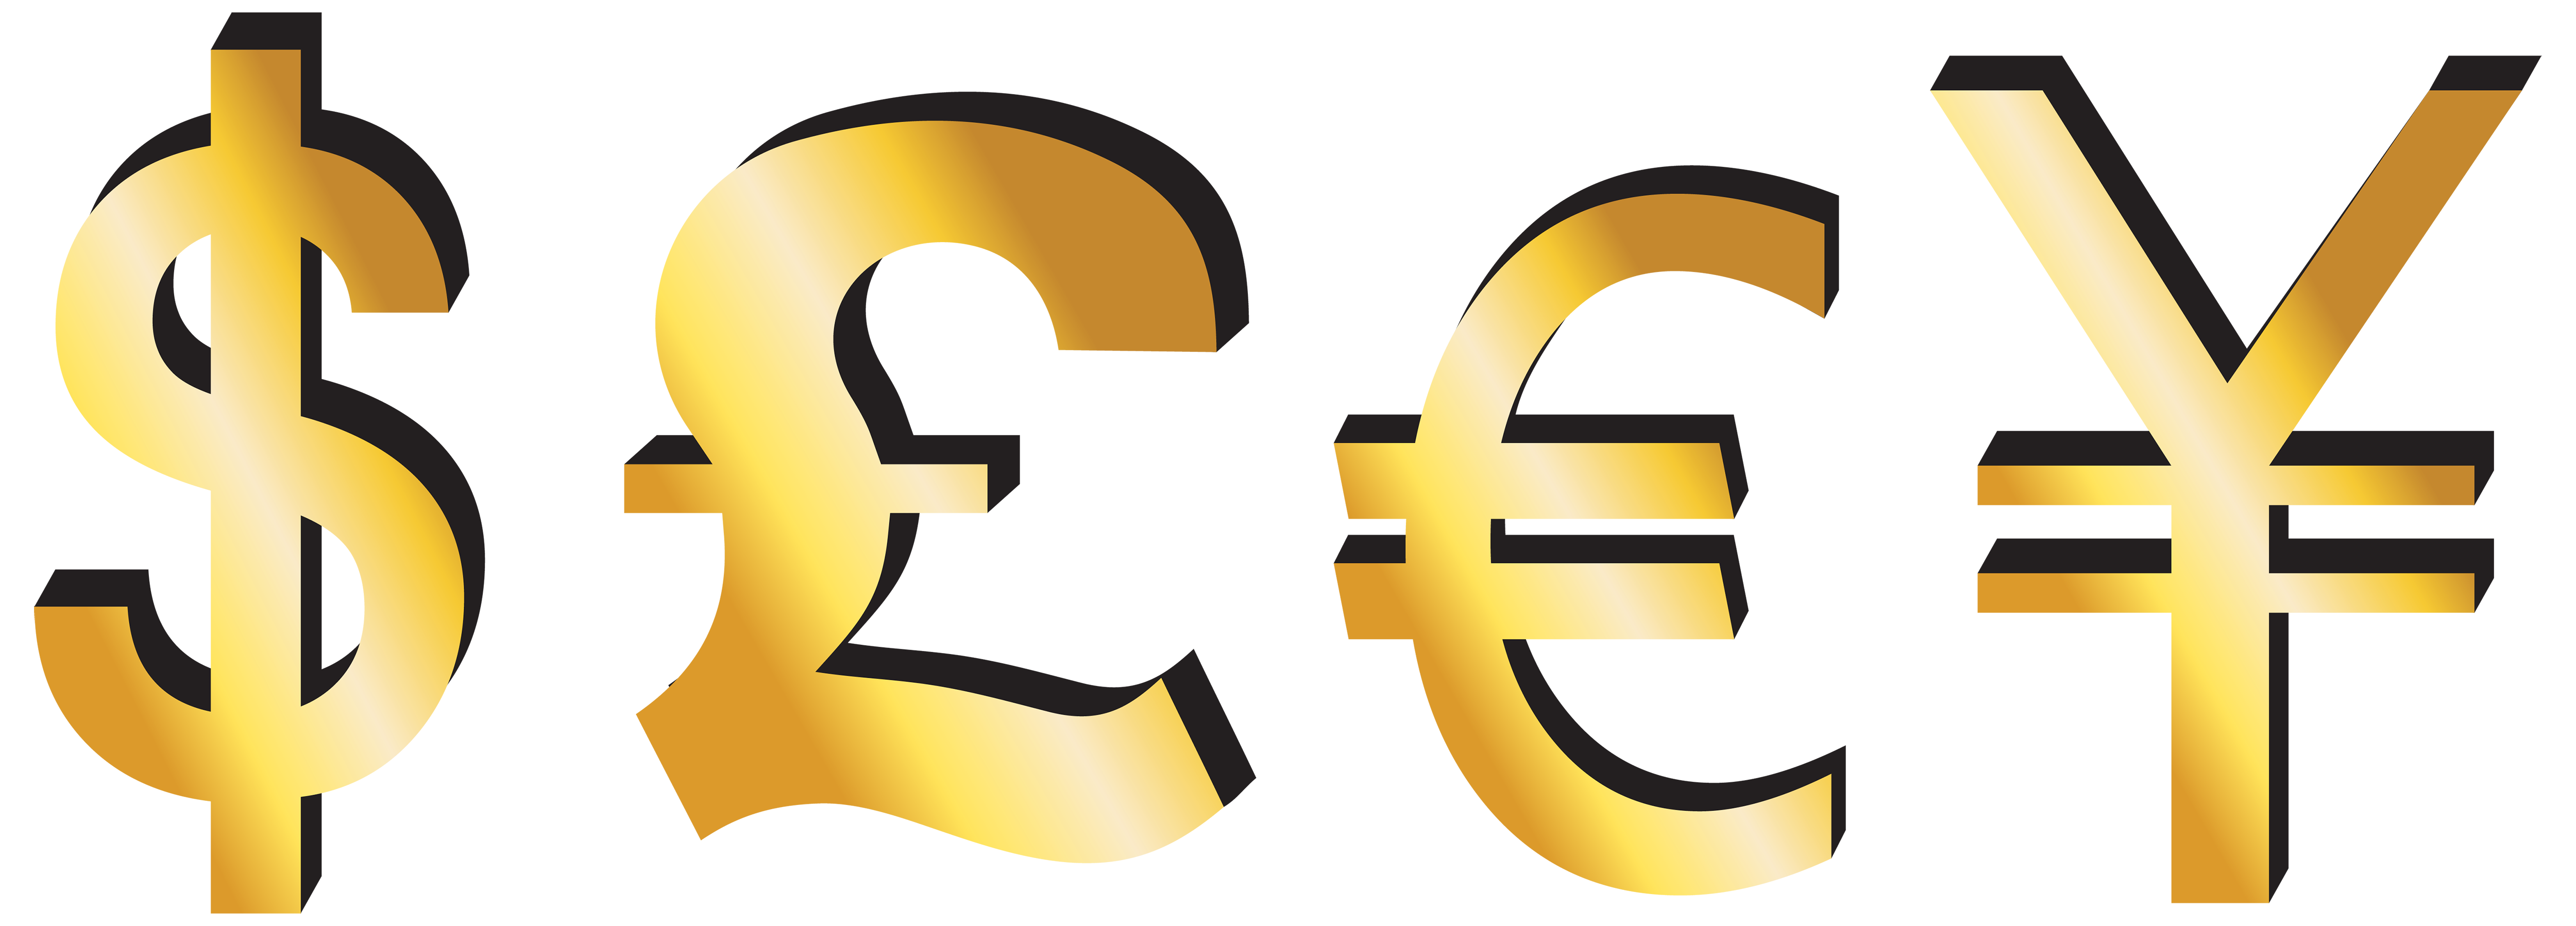 Dollar Pound Euro Yen Signs PNG Clipart.